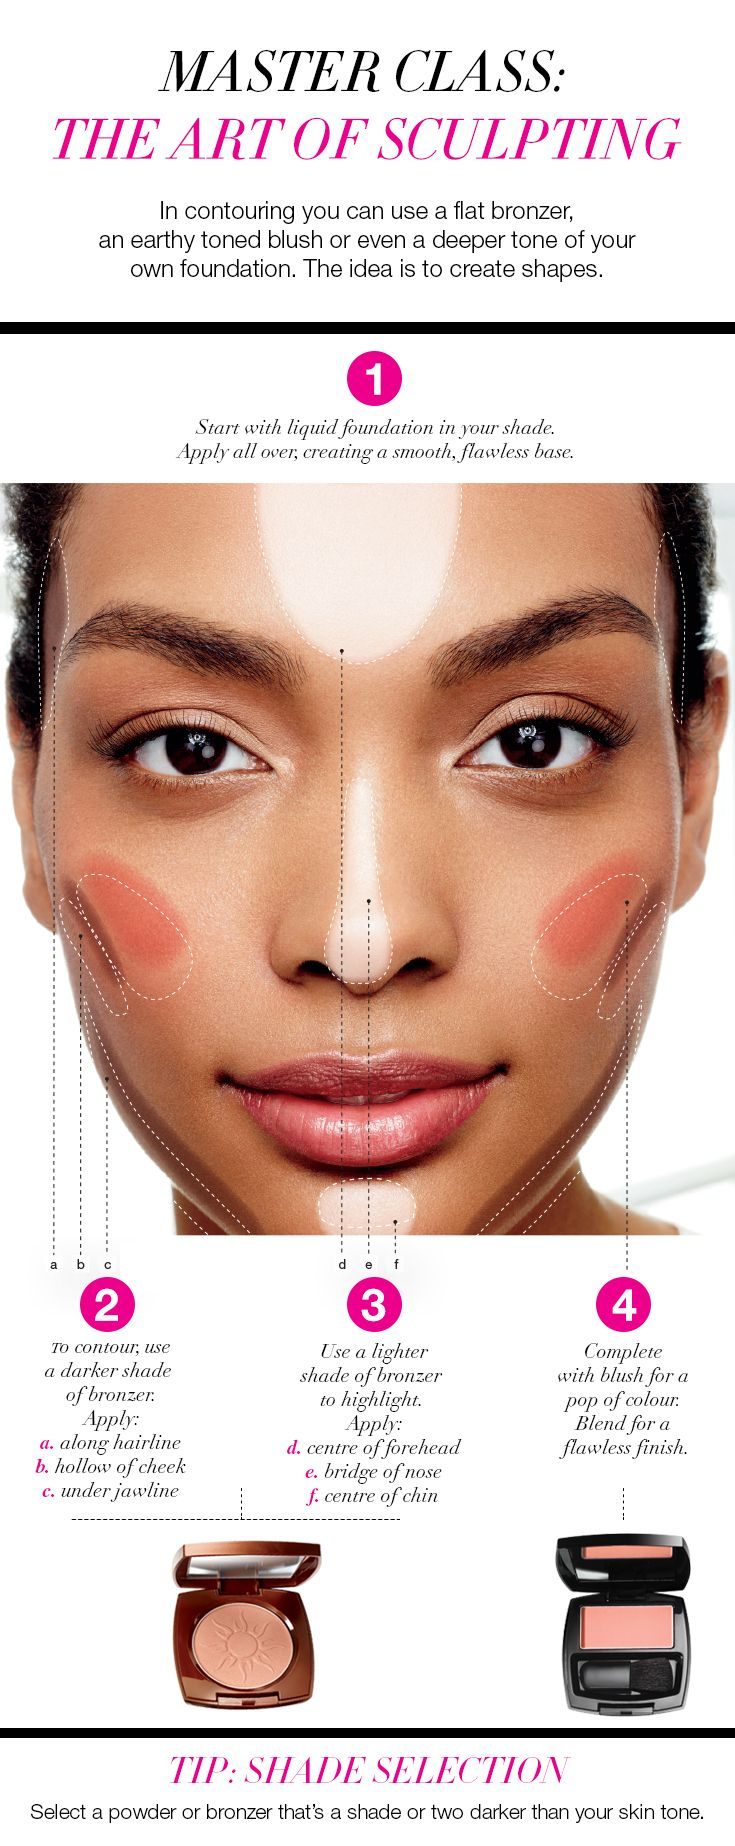 Class is in session! Learn how to sculpt like a pro! #AvonCanada #ProTip